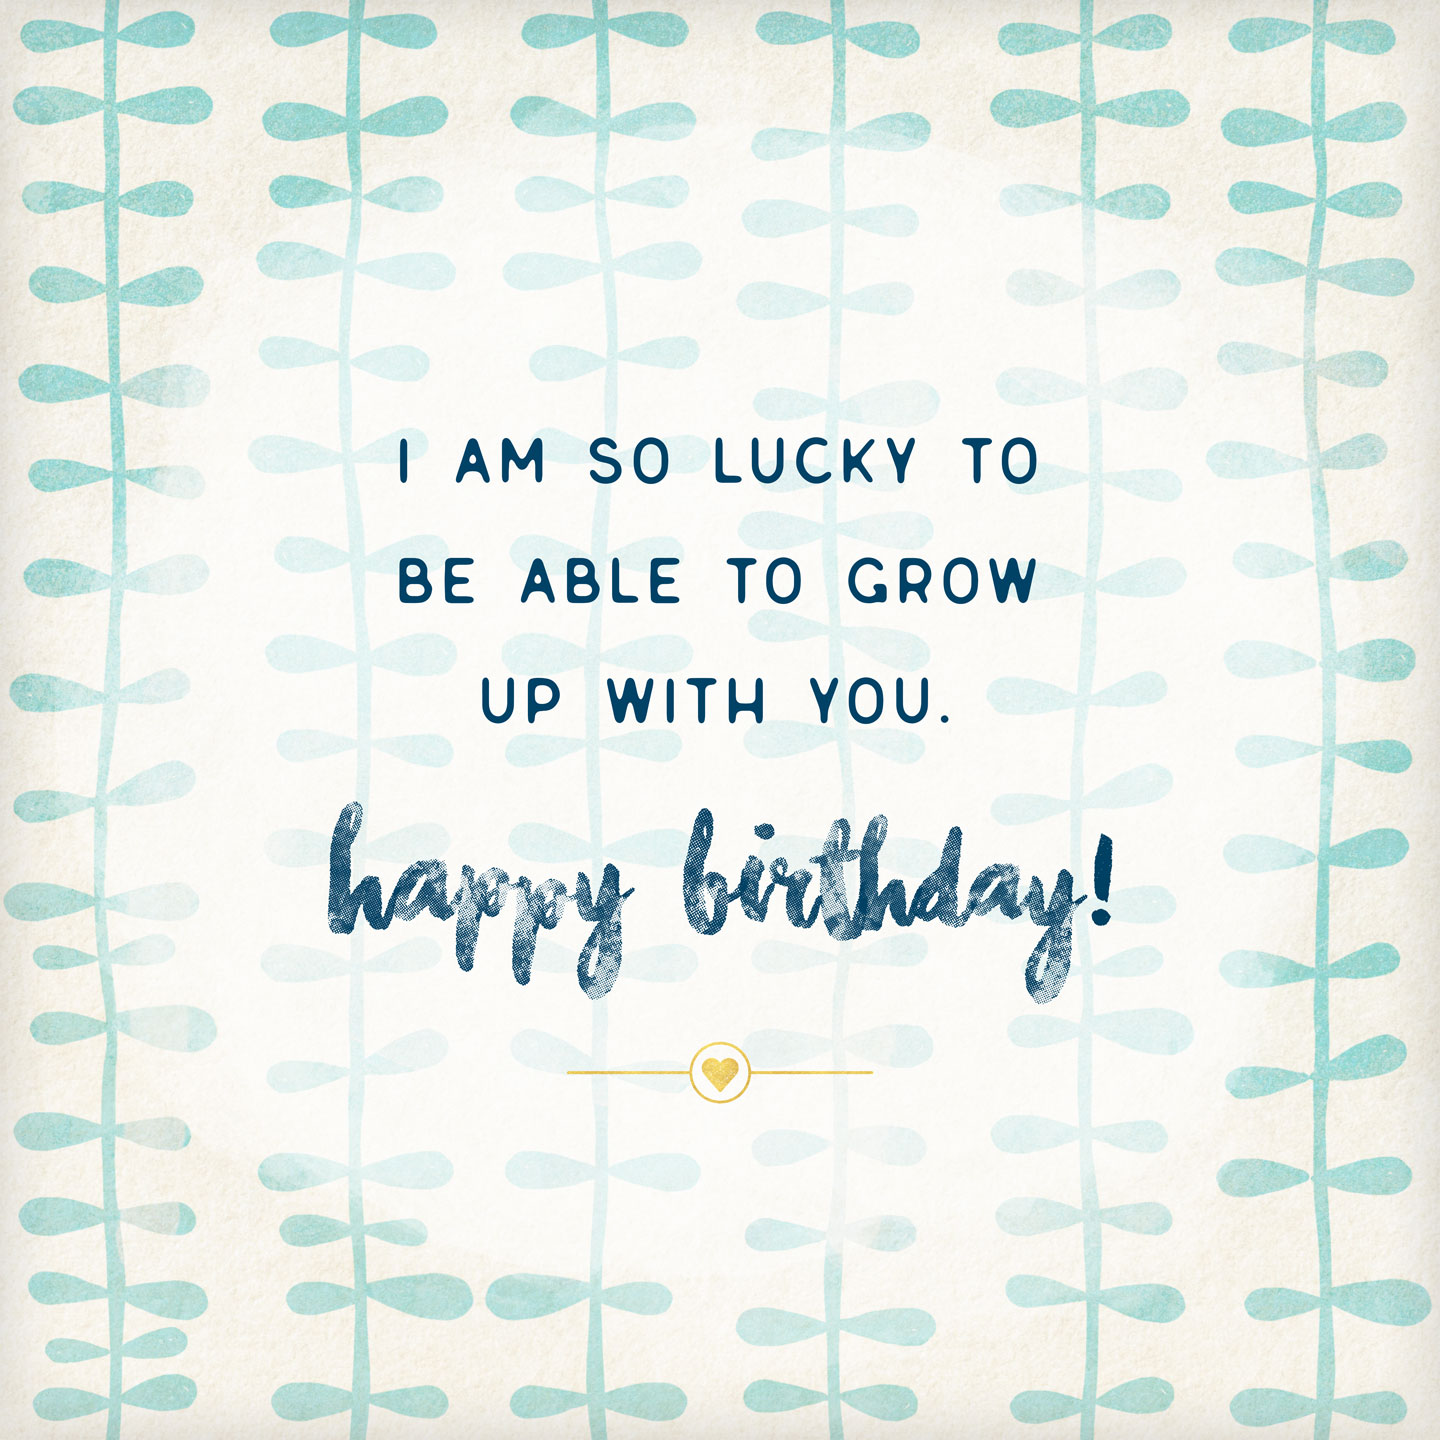 thoughtful birthday card messages ; birthday-card-messages-sibling